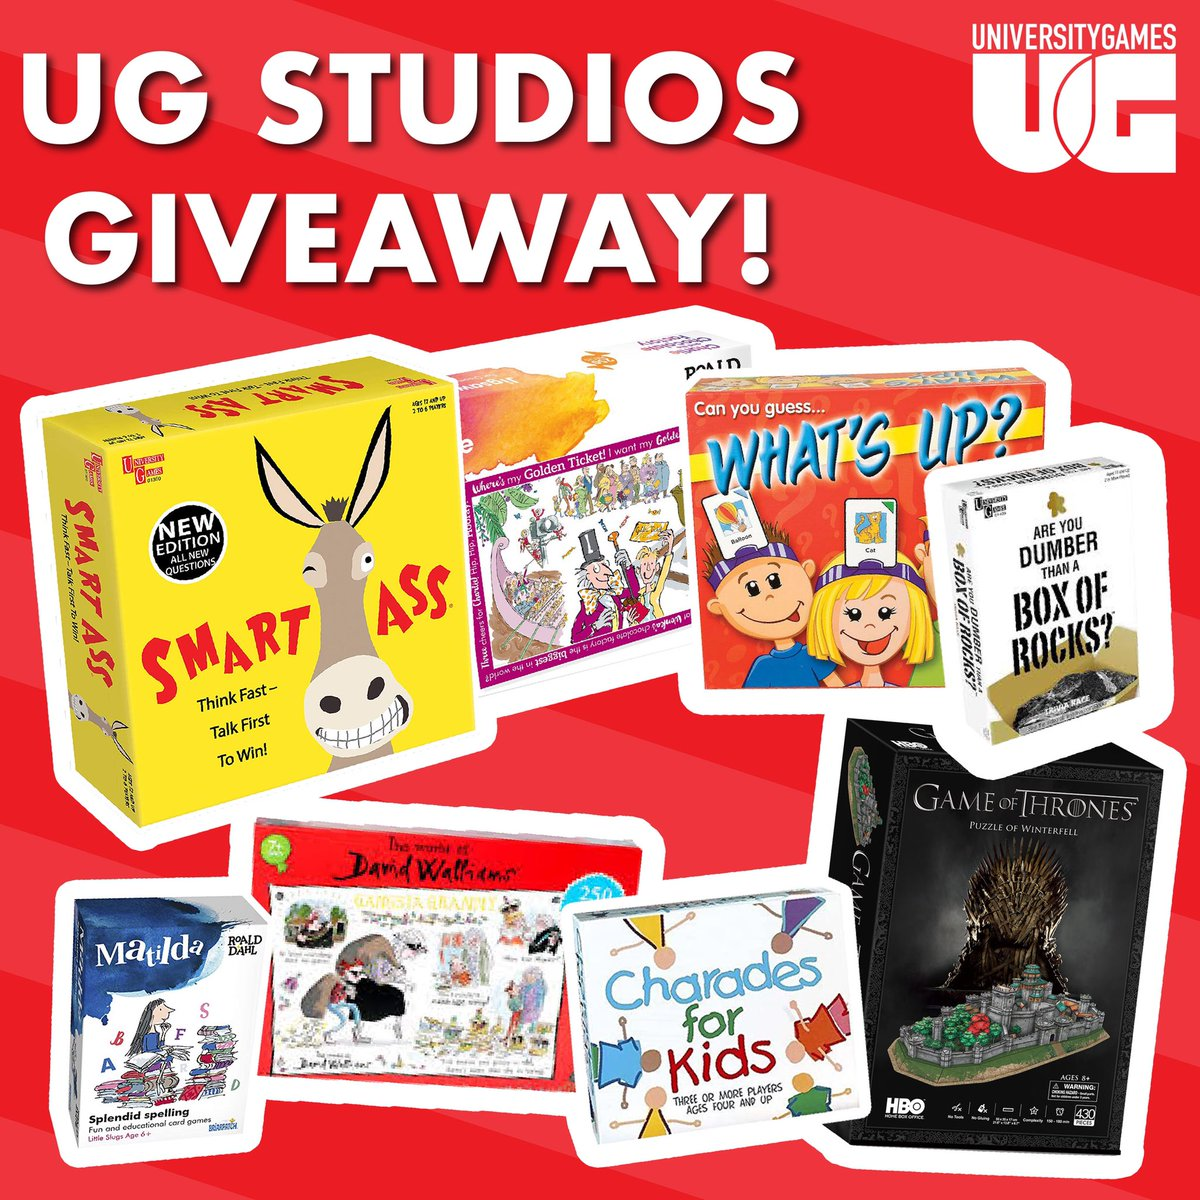 UK Bumper Games and Puzzles Giveaway! Last chance to enter to be in with a chance of winning all of the games and puzzles featured: #RT #Follow Comment #Puzzlegiveaway  Closes at 3pm on 8 April 2020. UK & ROI only. t&c's on FB and IG #giveaway #stayawaygiveaway #winpic.twitter.com/3vN2St9DWd